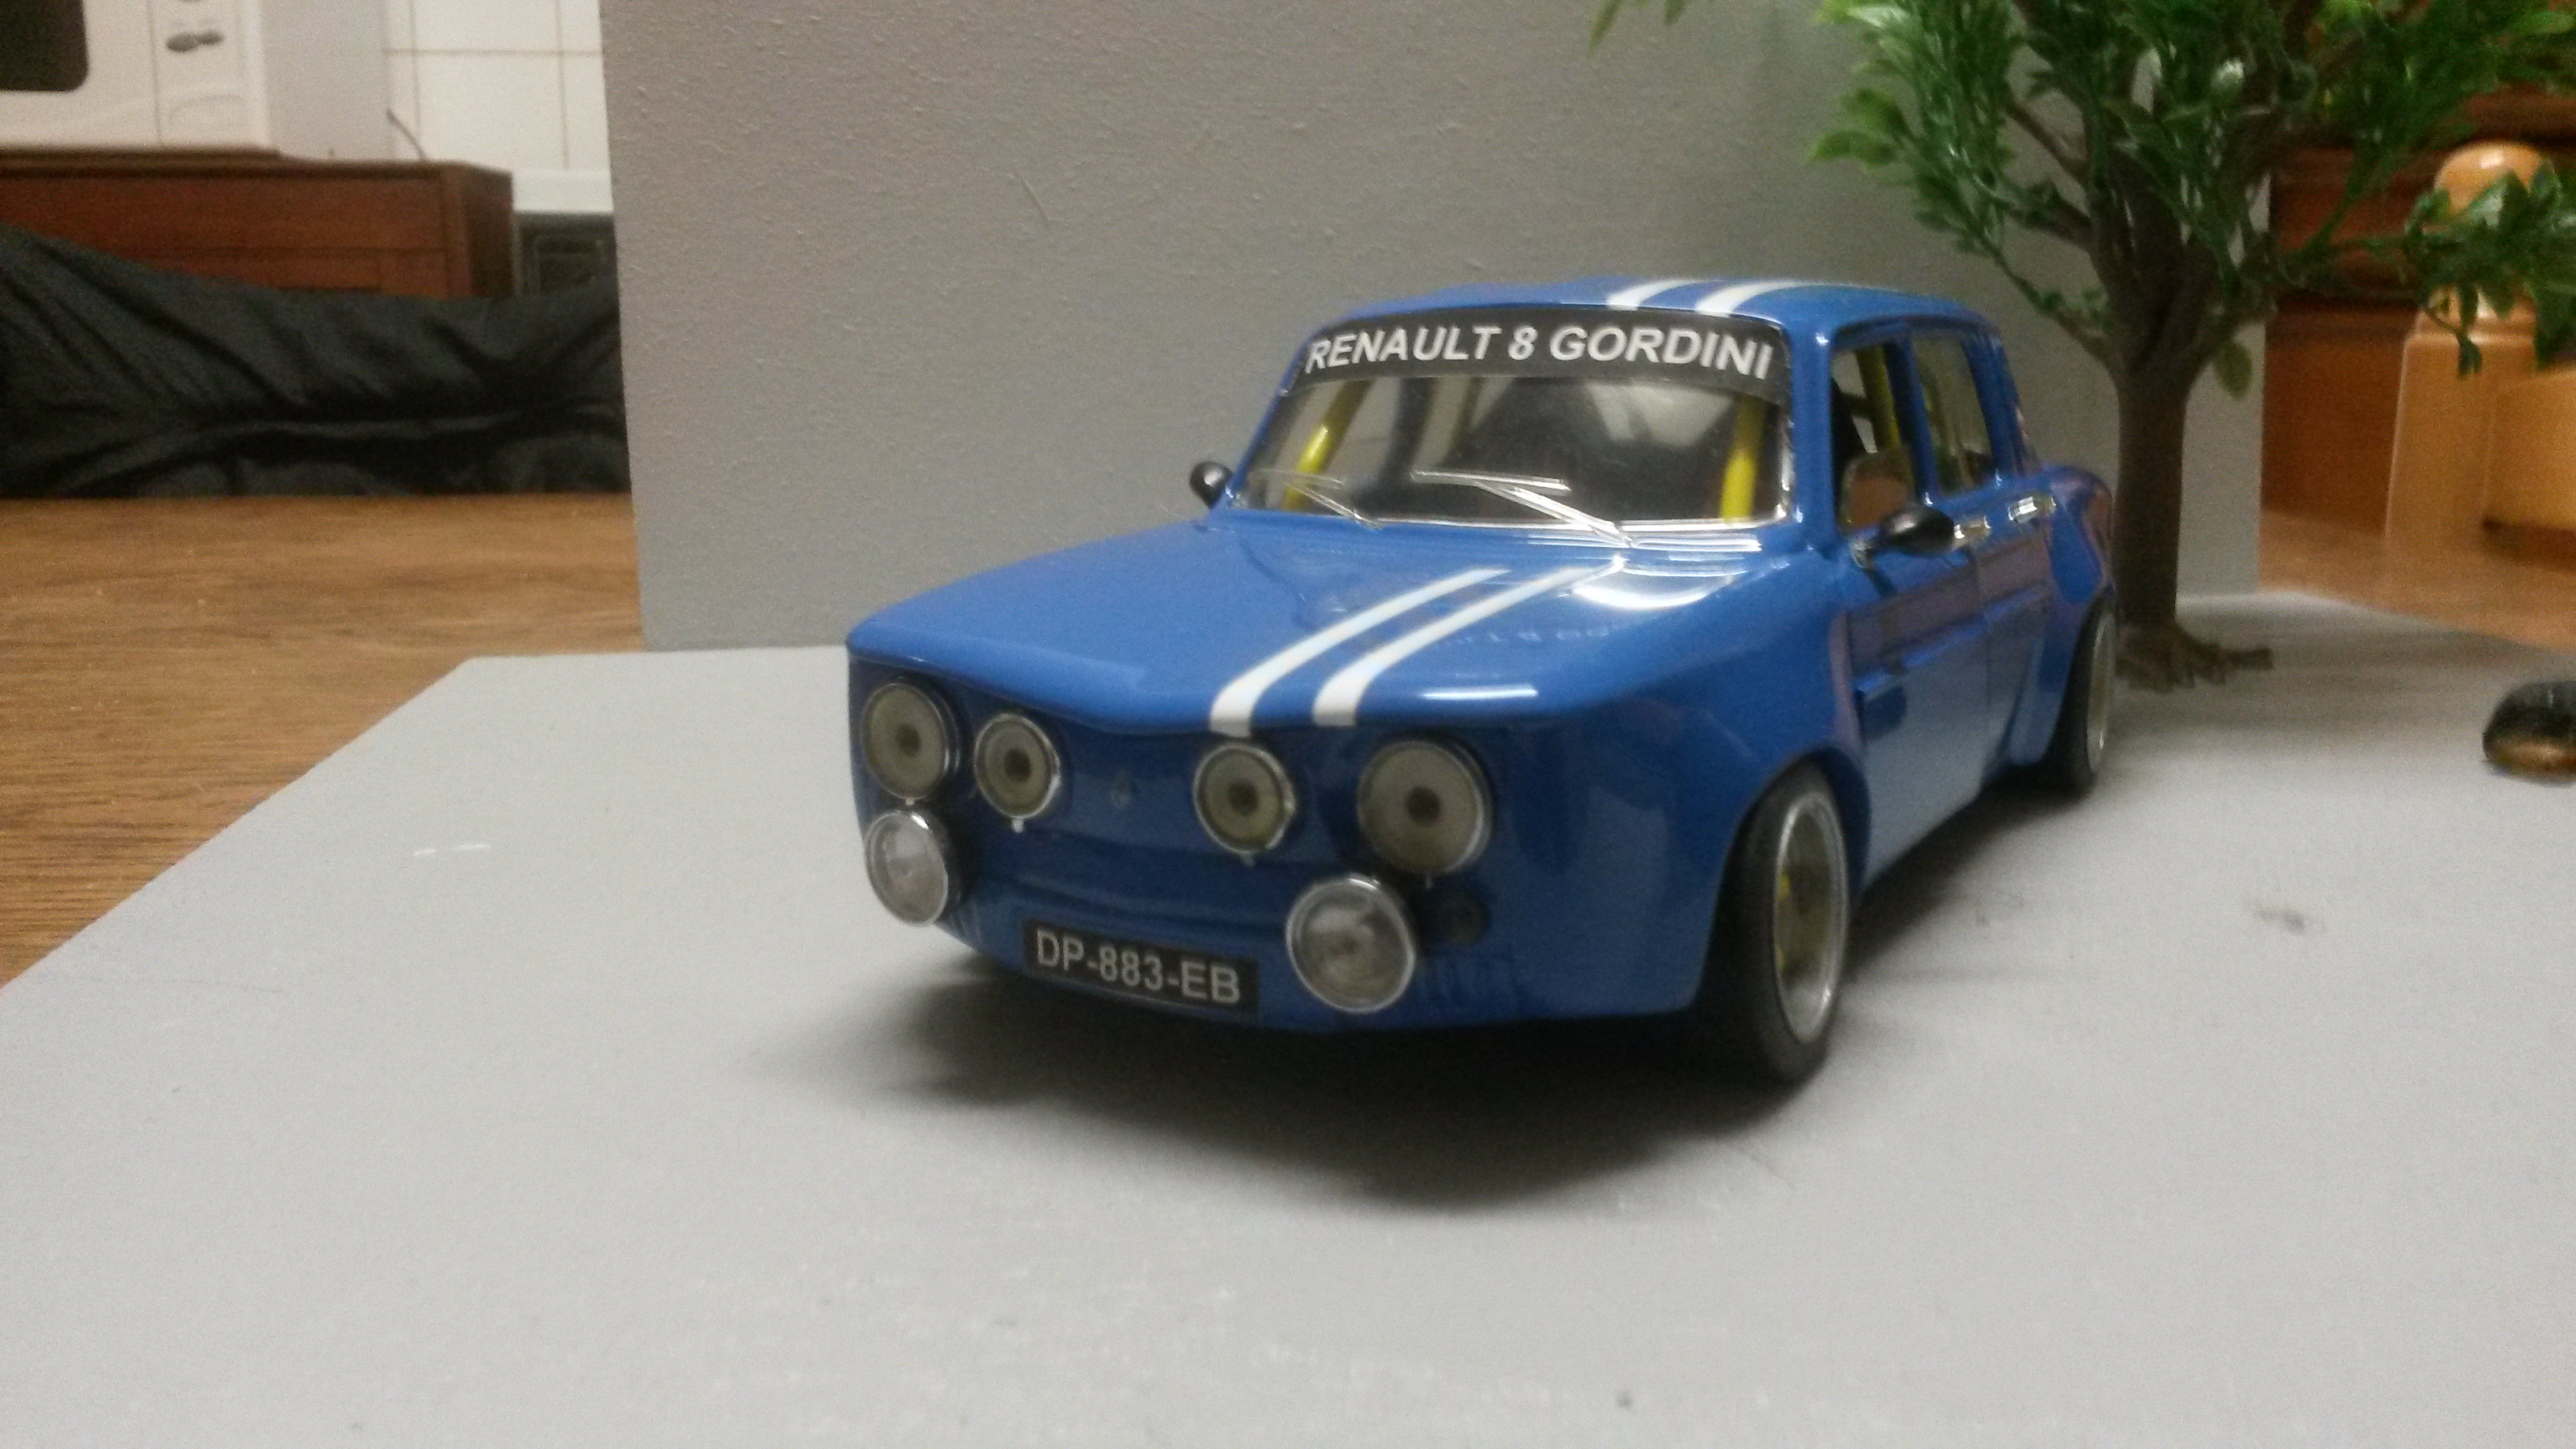 Renault 8 Gordini bleu kit large groupe A tuning . Renault 8 Gordini bleu kit large groupe A modellini 1/18